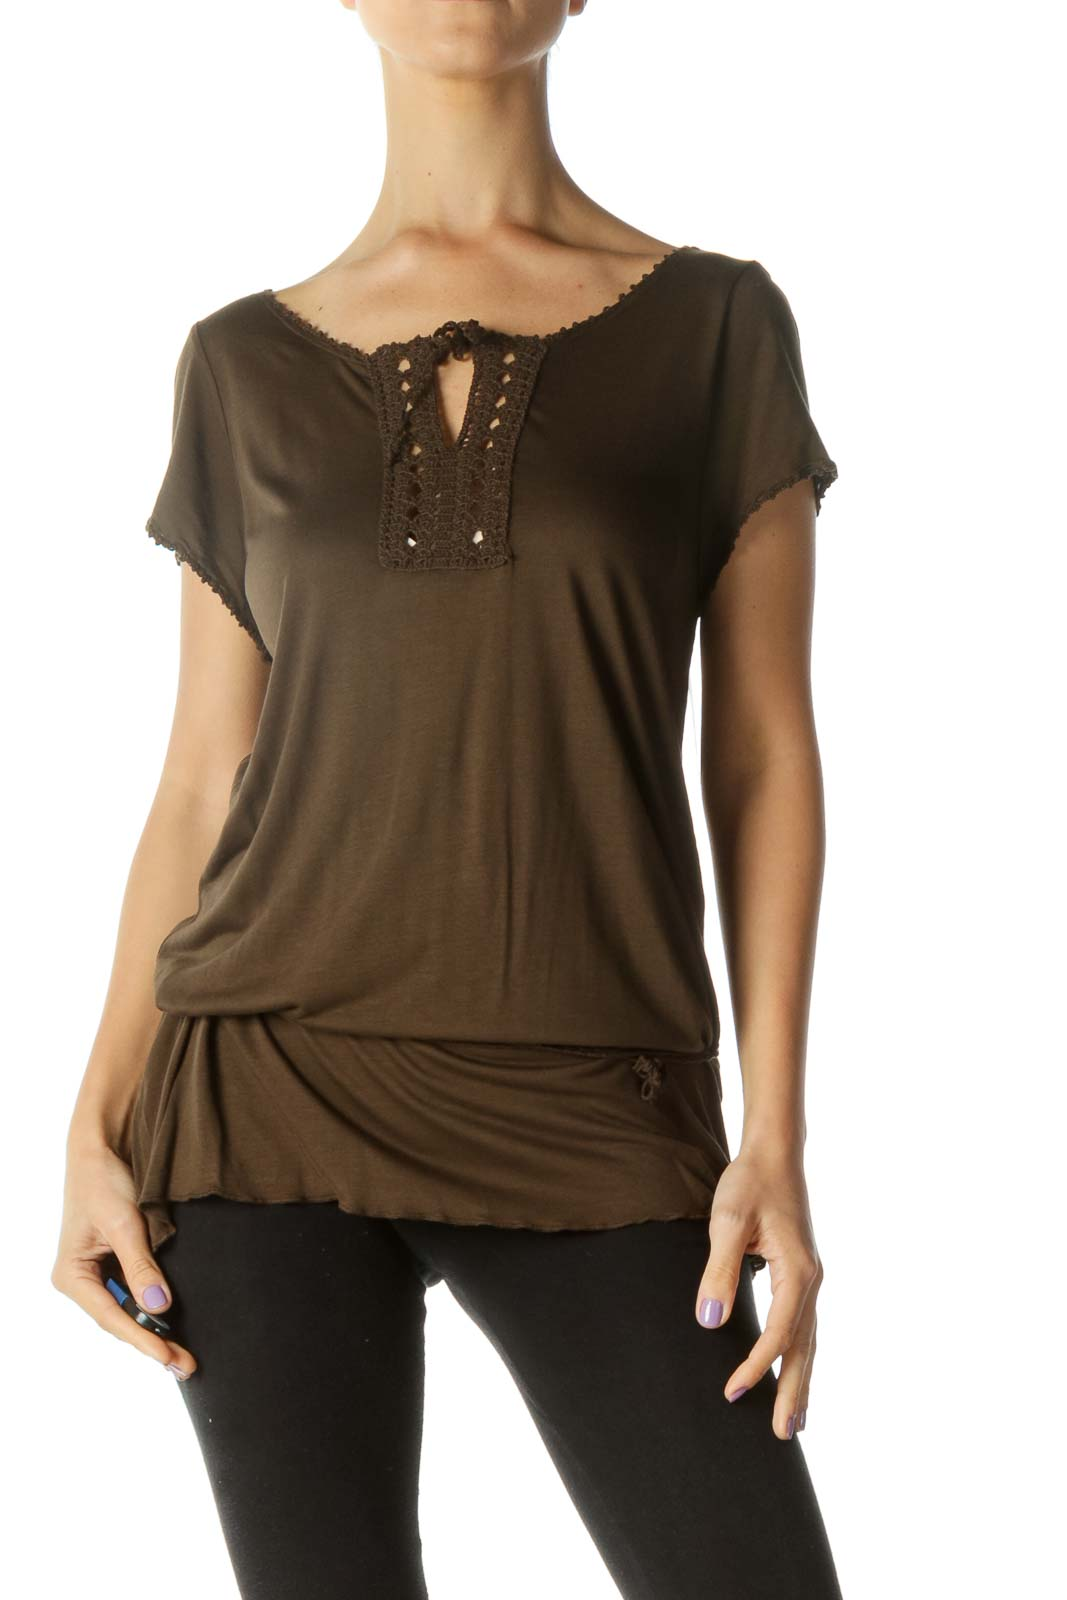 Brown Crochet Detail with String T-Shirt